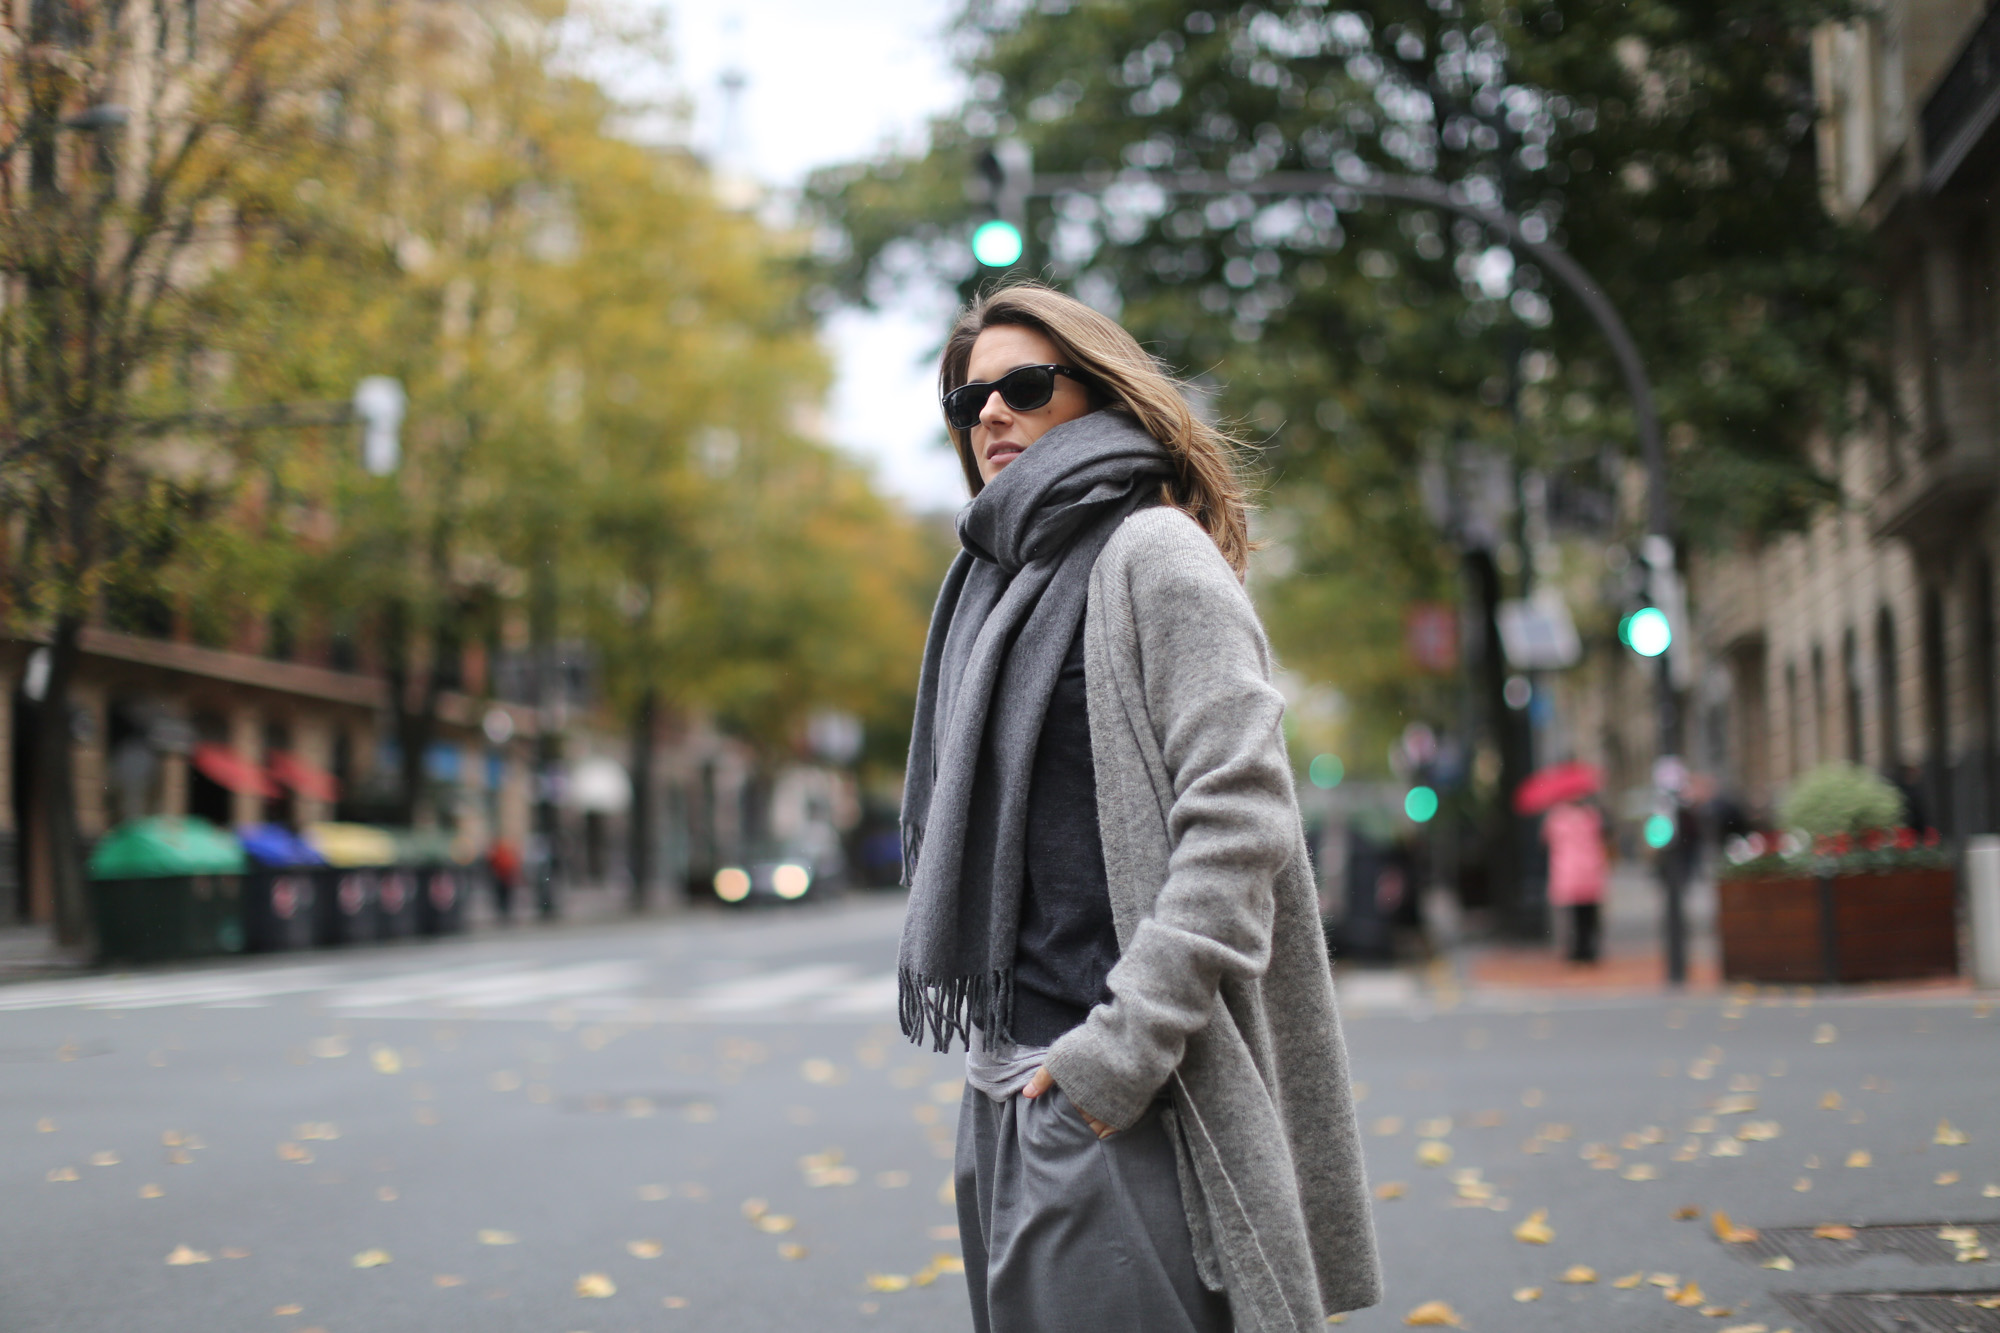 Clochet-streetstyle-all-grey-suiteblanco-culottes-h&m-trend-angora-cardigan-mango-pointy-loafers-2